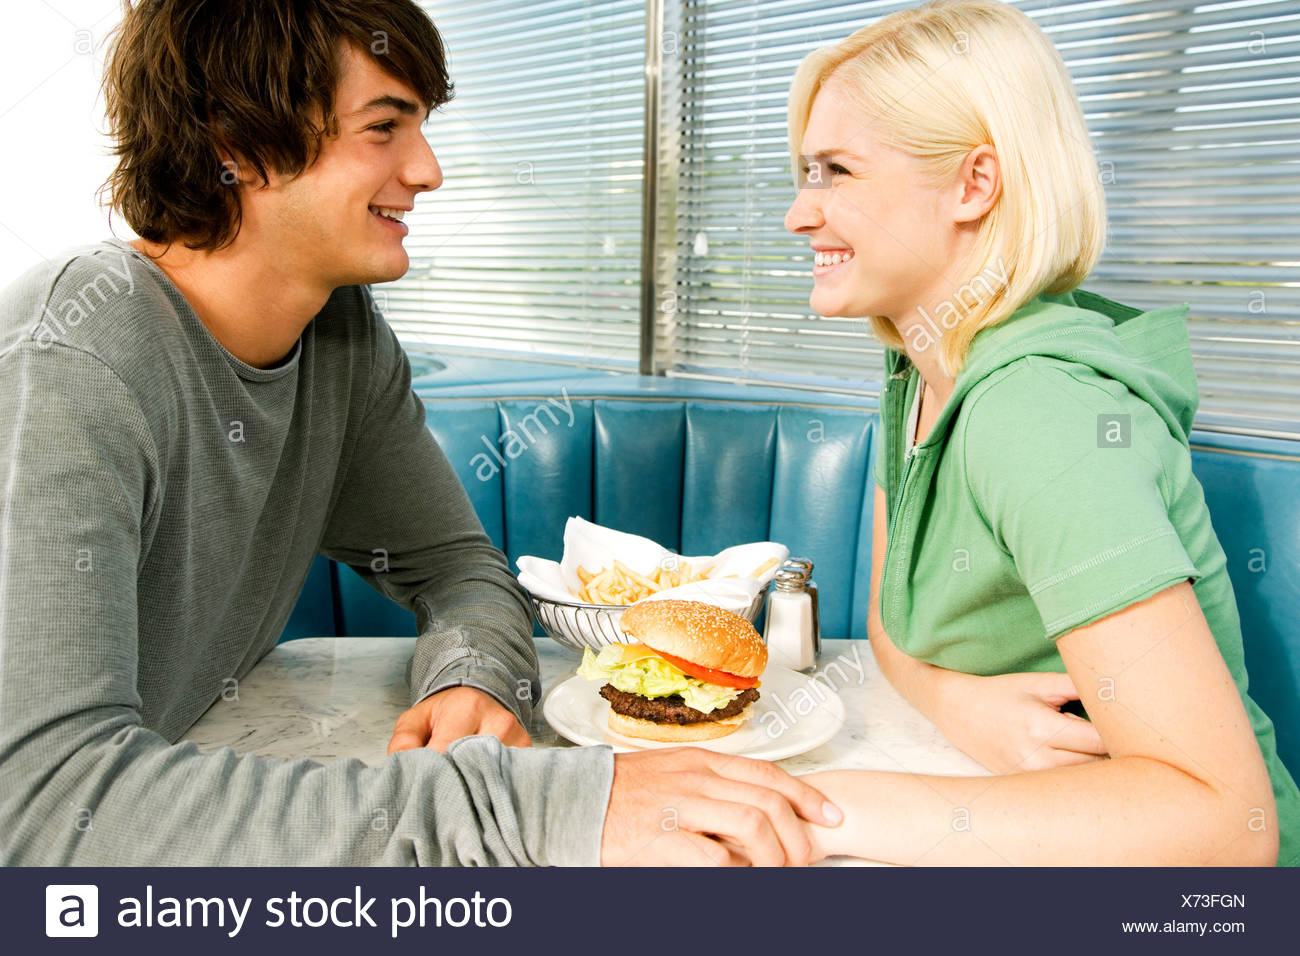 teenage couple in a diner smiling and looking into each other's eyes over a hamburger - Stock Image